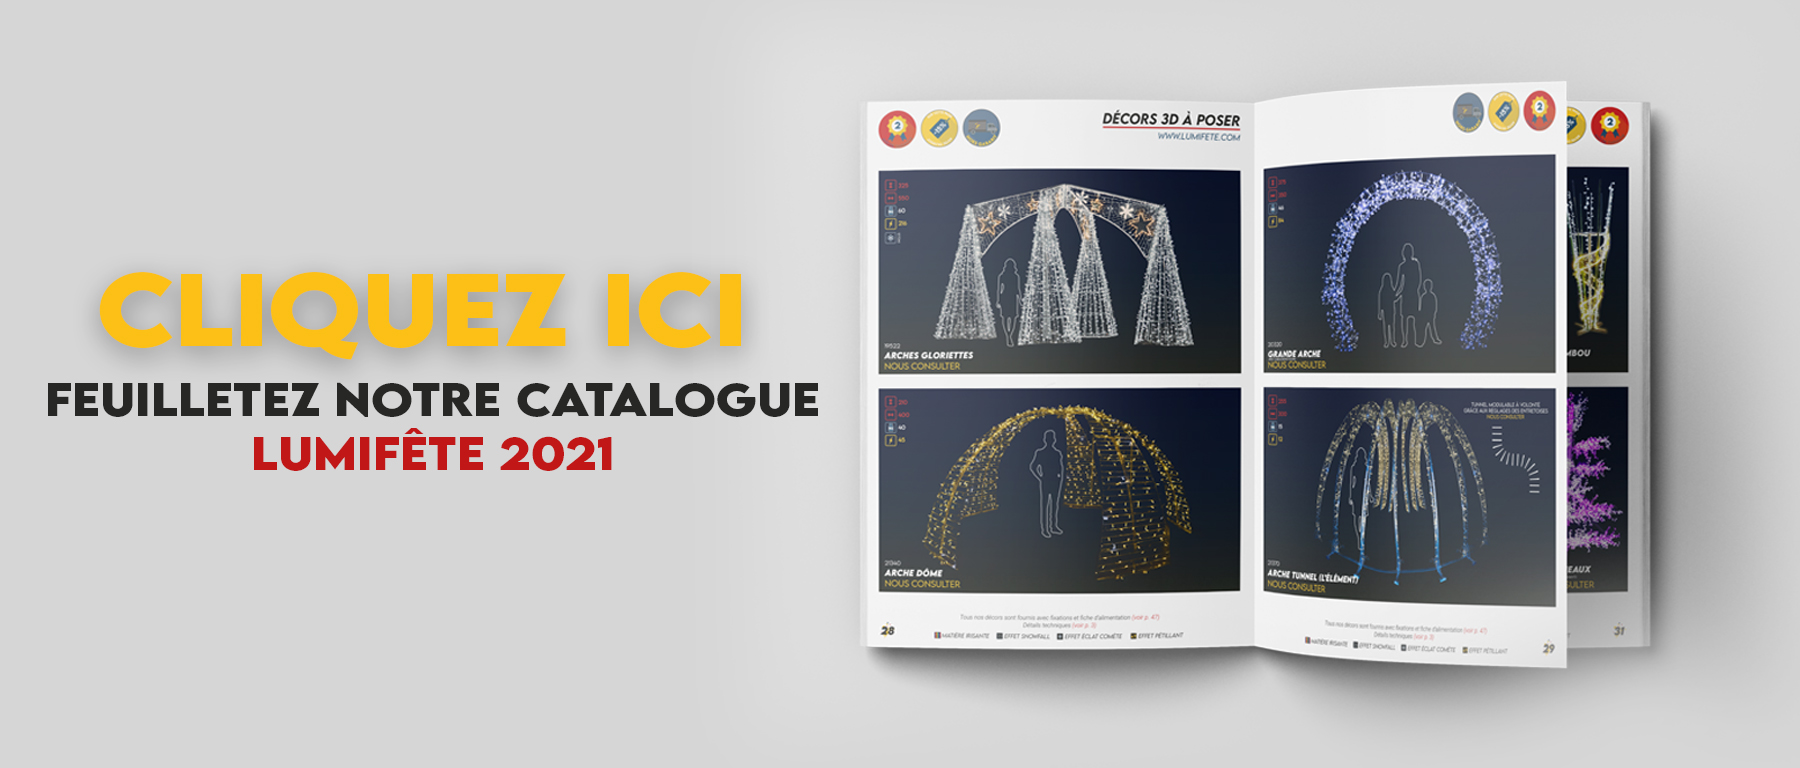 Catalogue Lumifete 2021 en ligne